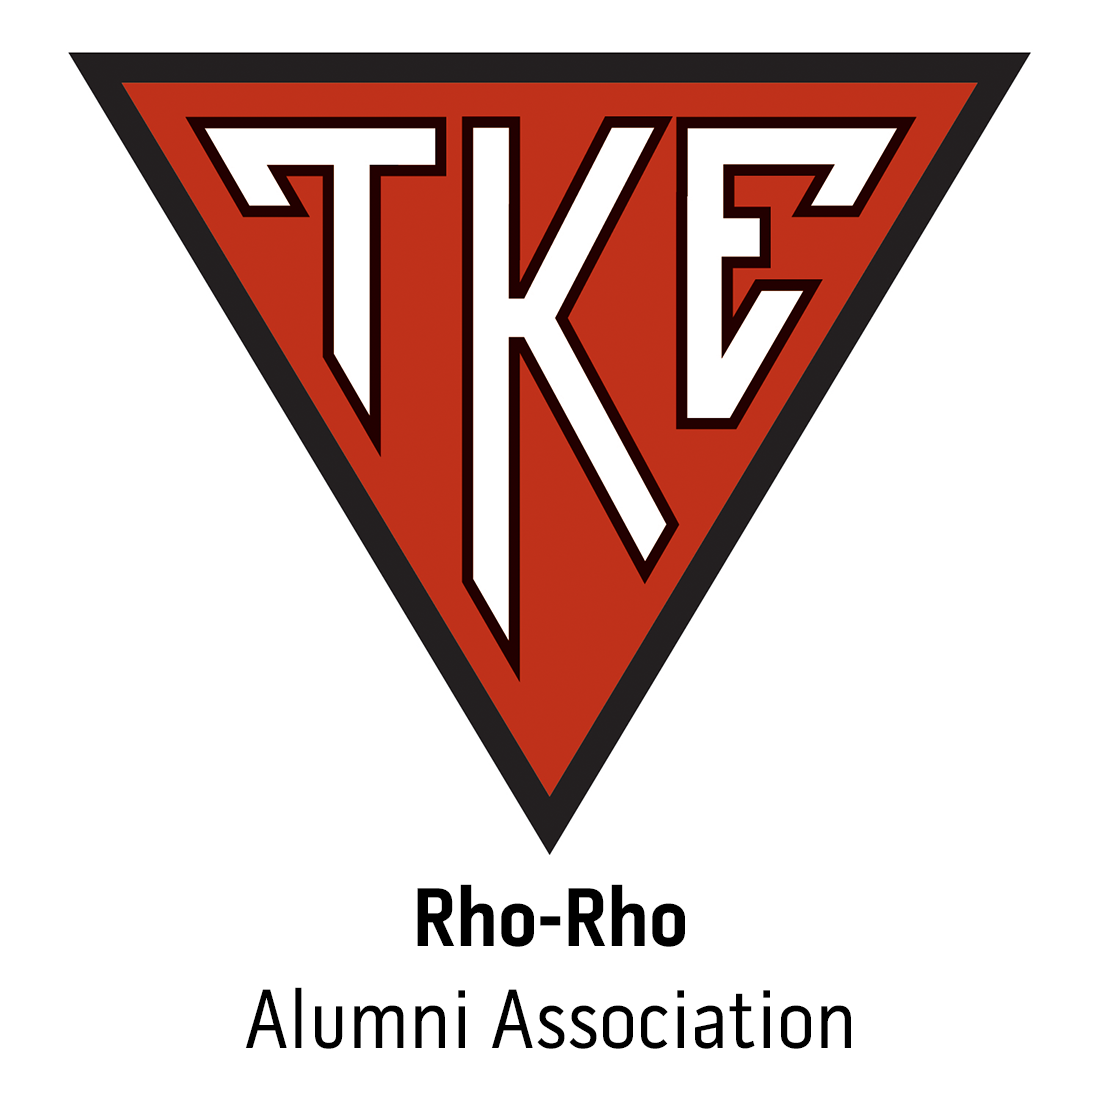 Rho-Rho Alumni Association at Sam Houston State University